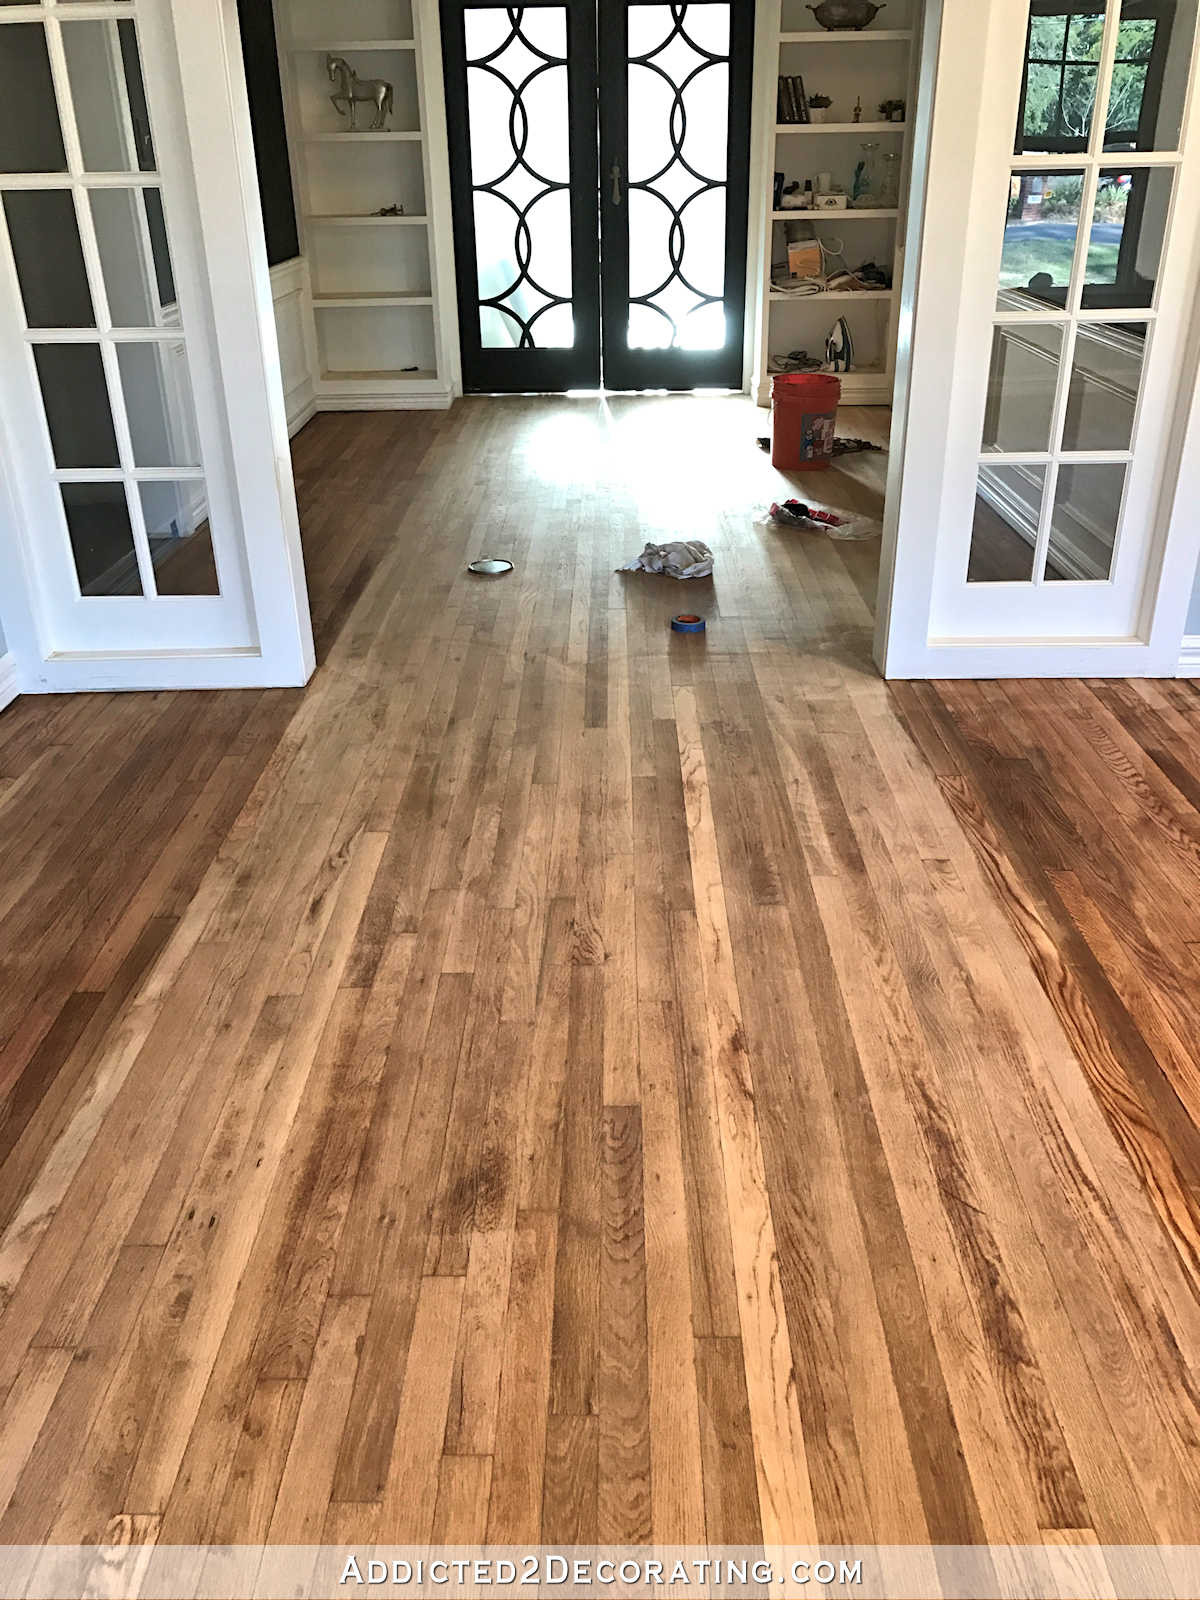 a hardwood floor specialist denver of how much to refinish wood floors adventures in staining my red oak for how much to refinish wood floors adventures in staining my red oak hardwood floors products